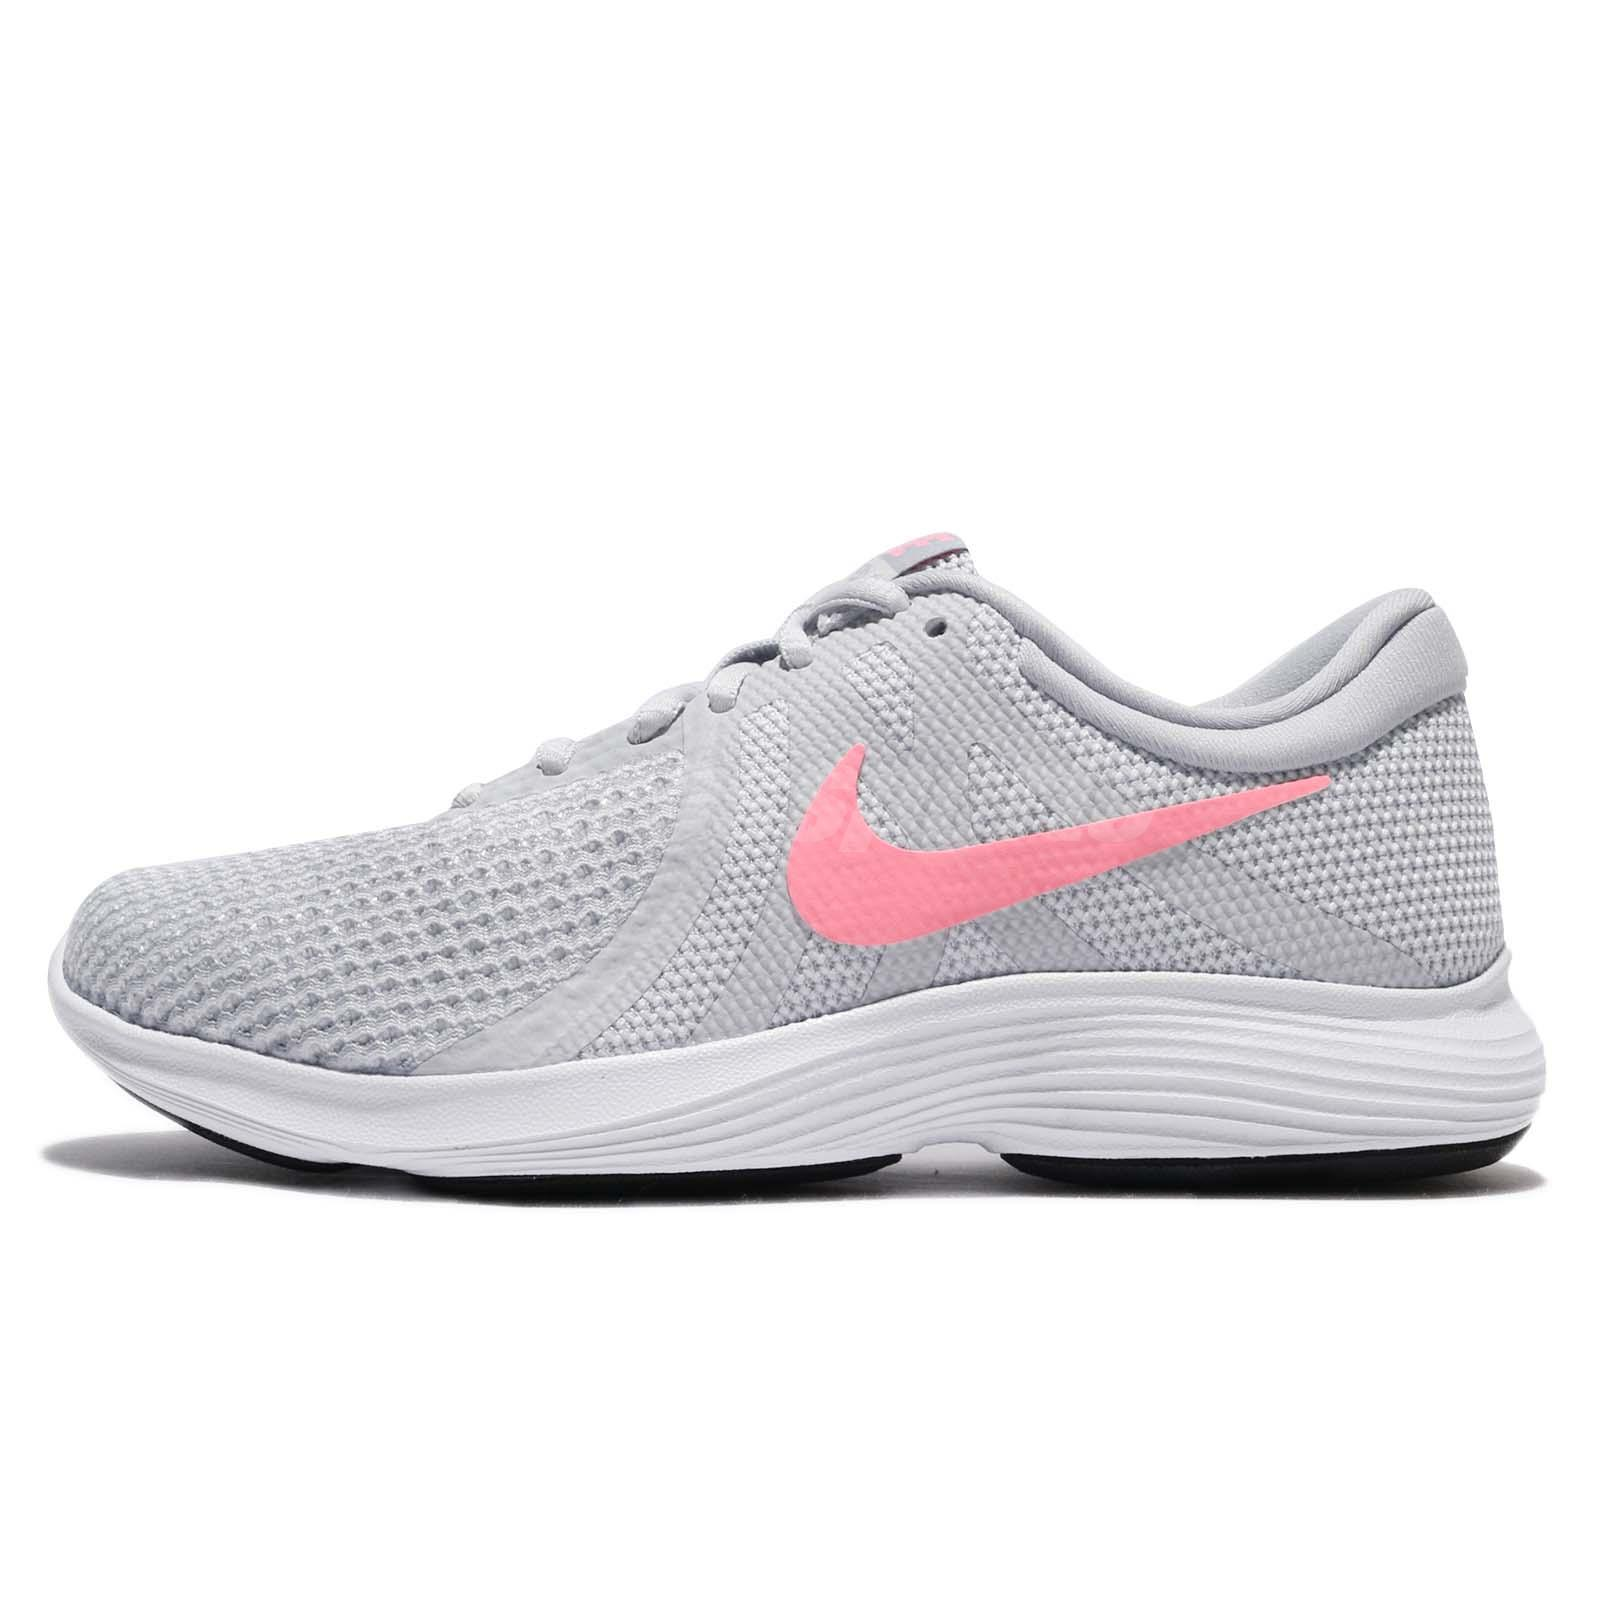 san francisco 6da7e f7f73 nike revolution 3 women amazon